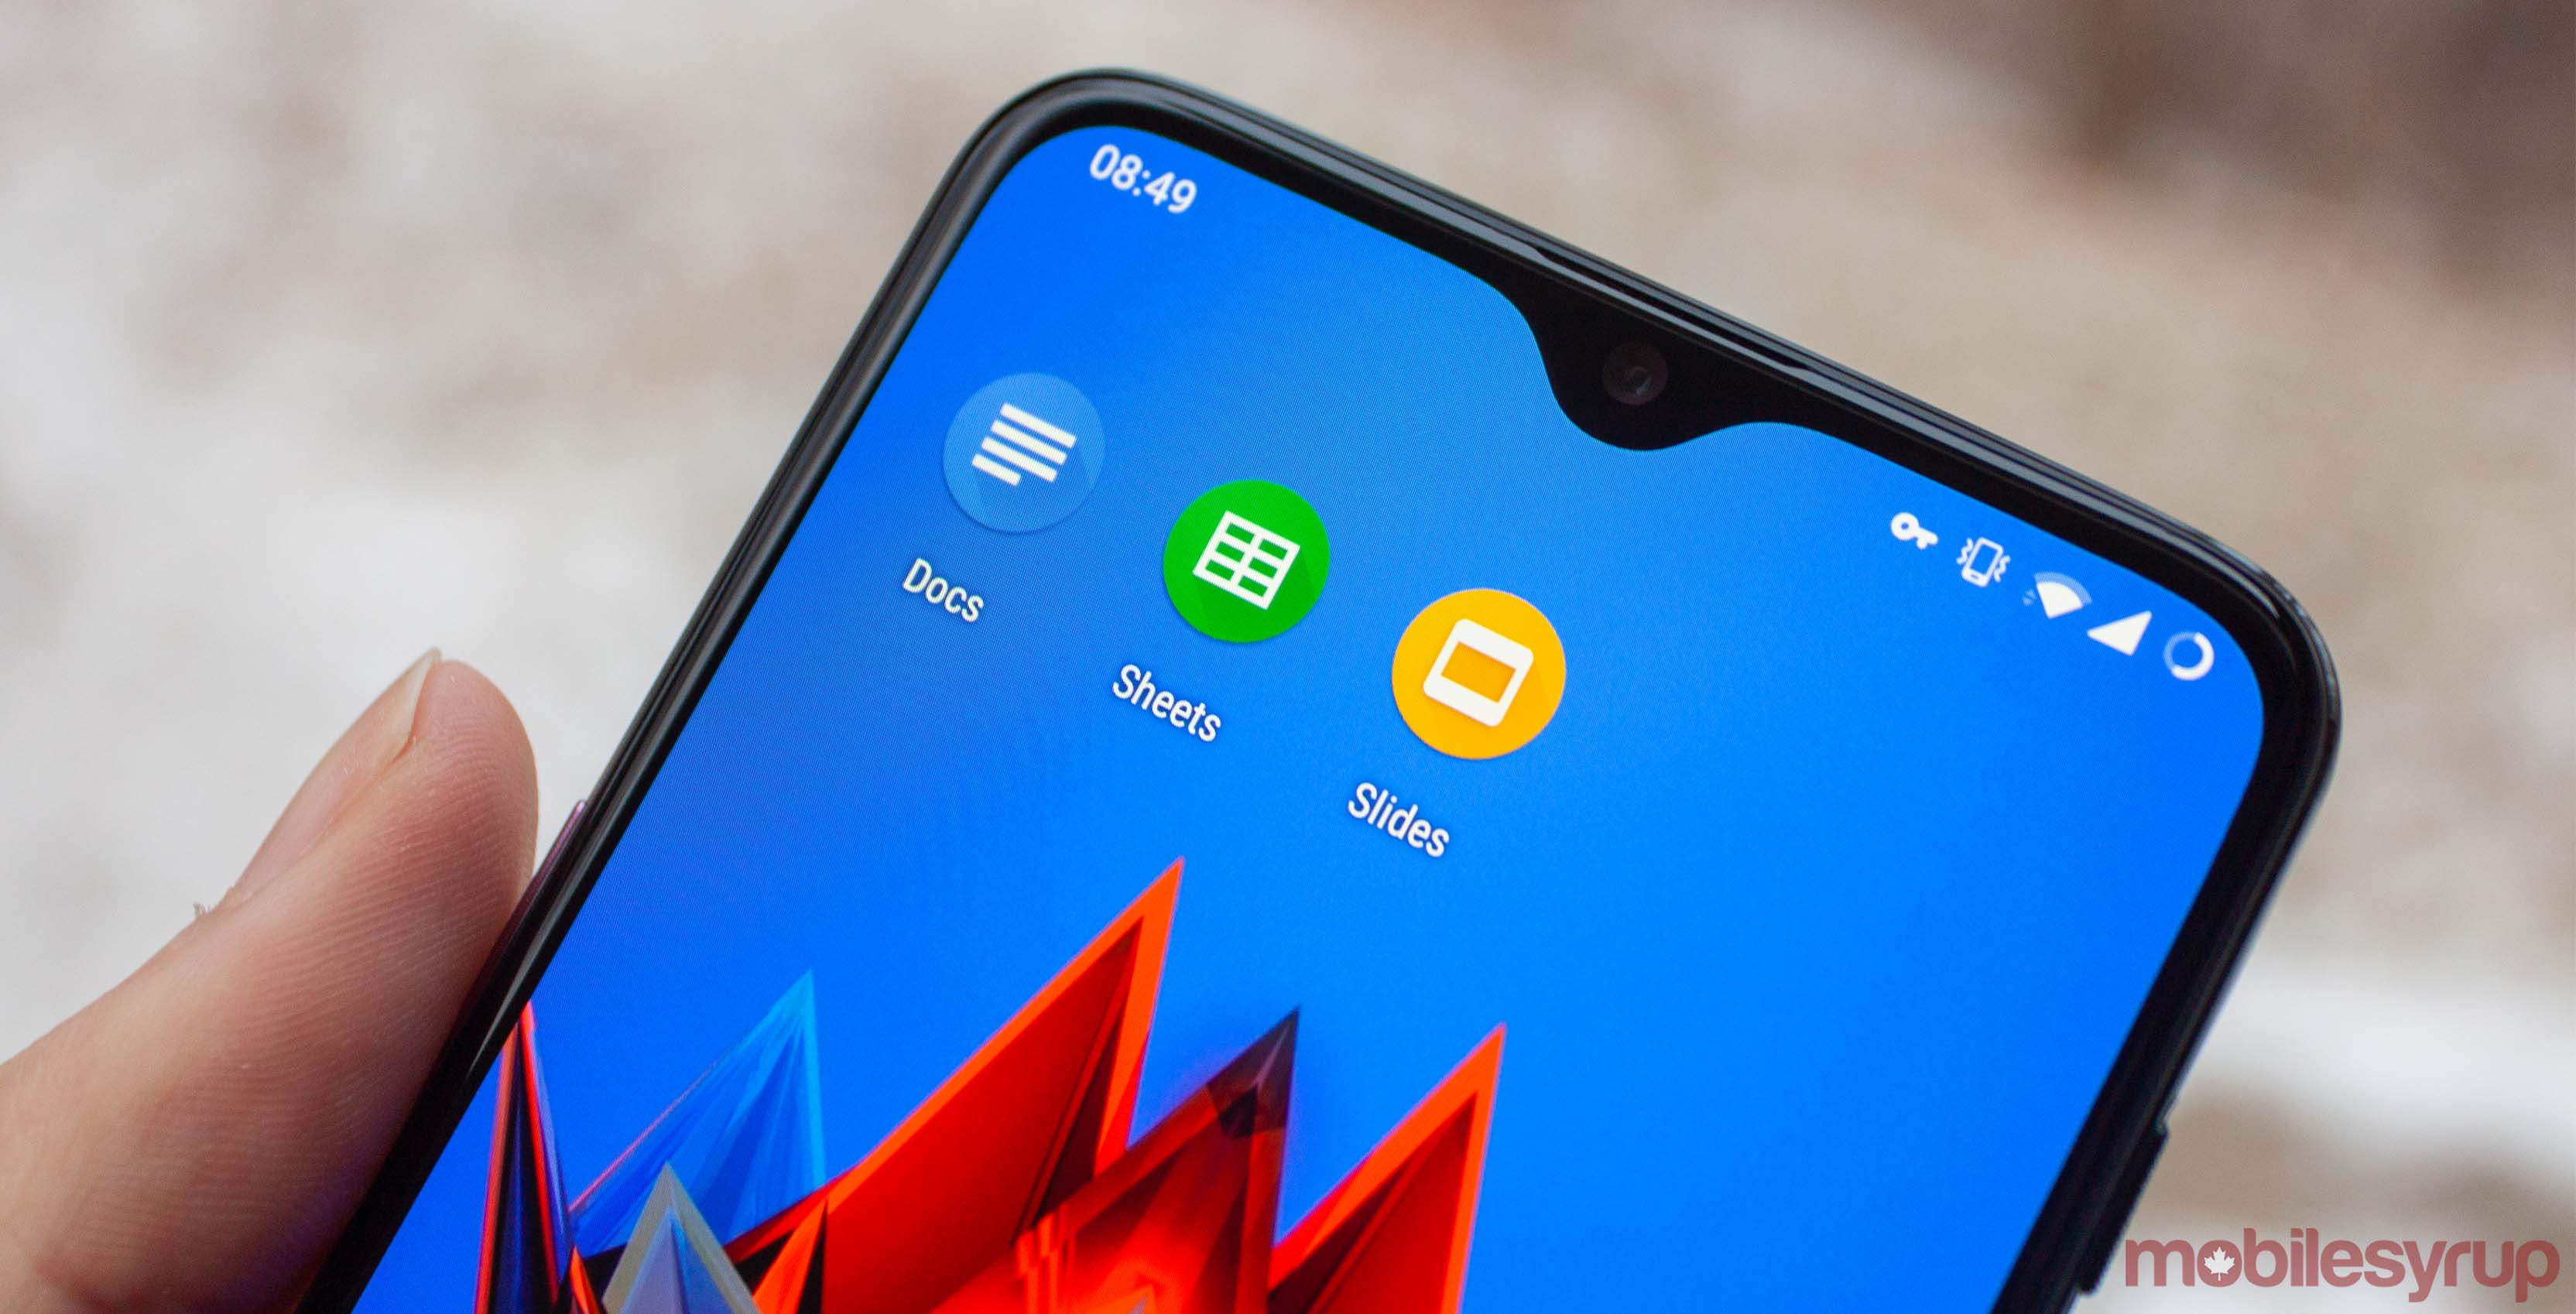 Google Docs, Sheets and Slides on OnePlus 6T